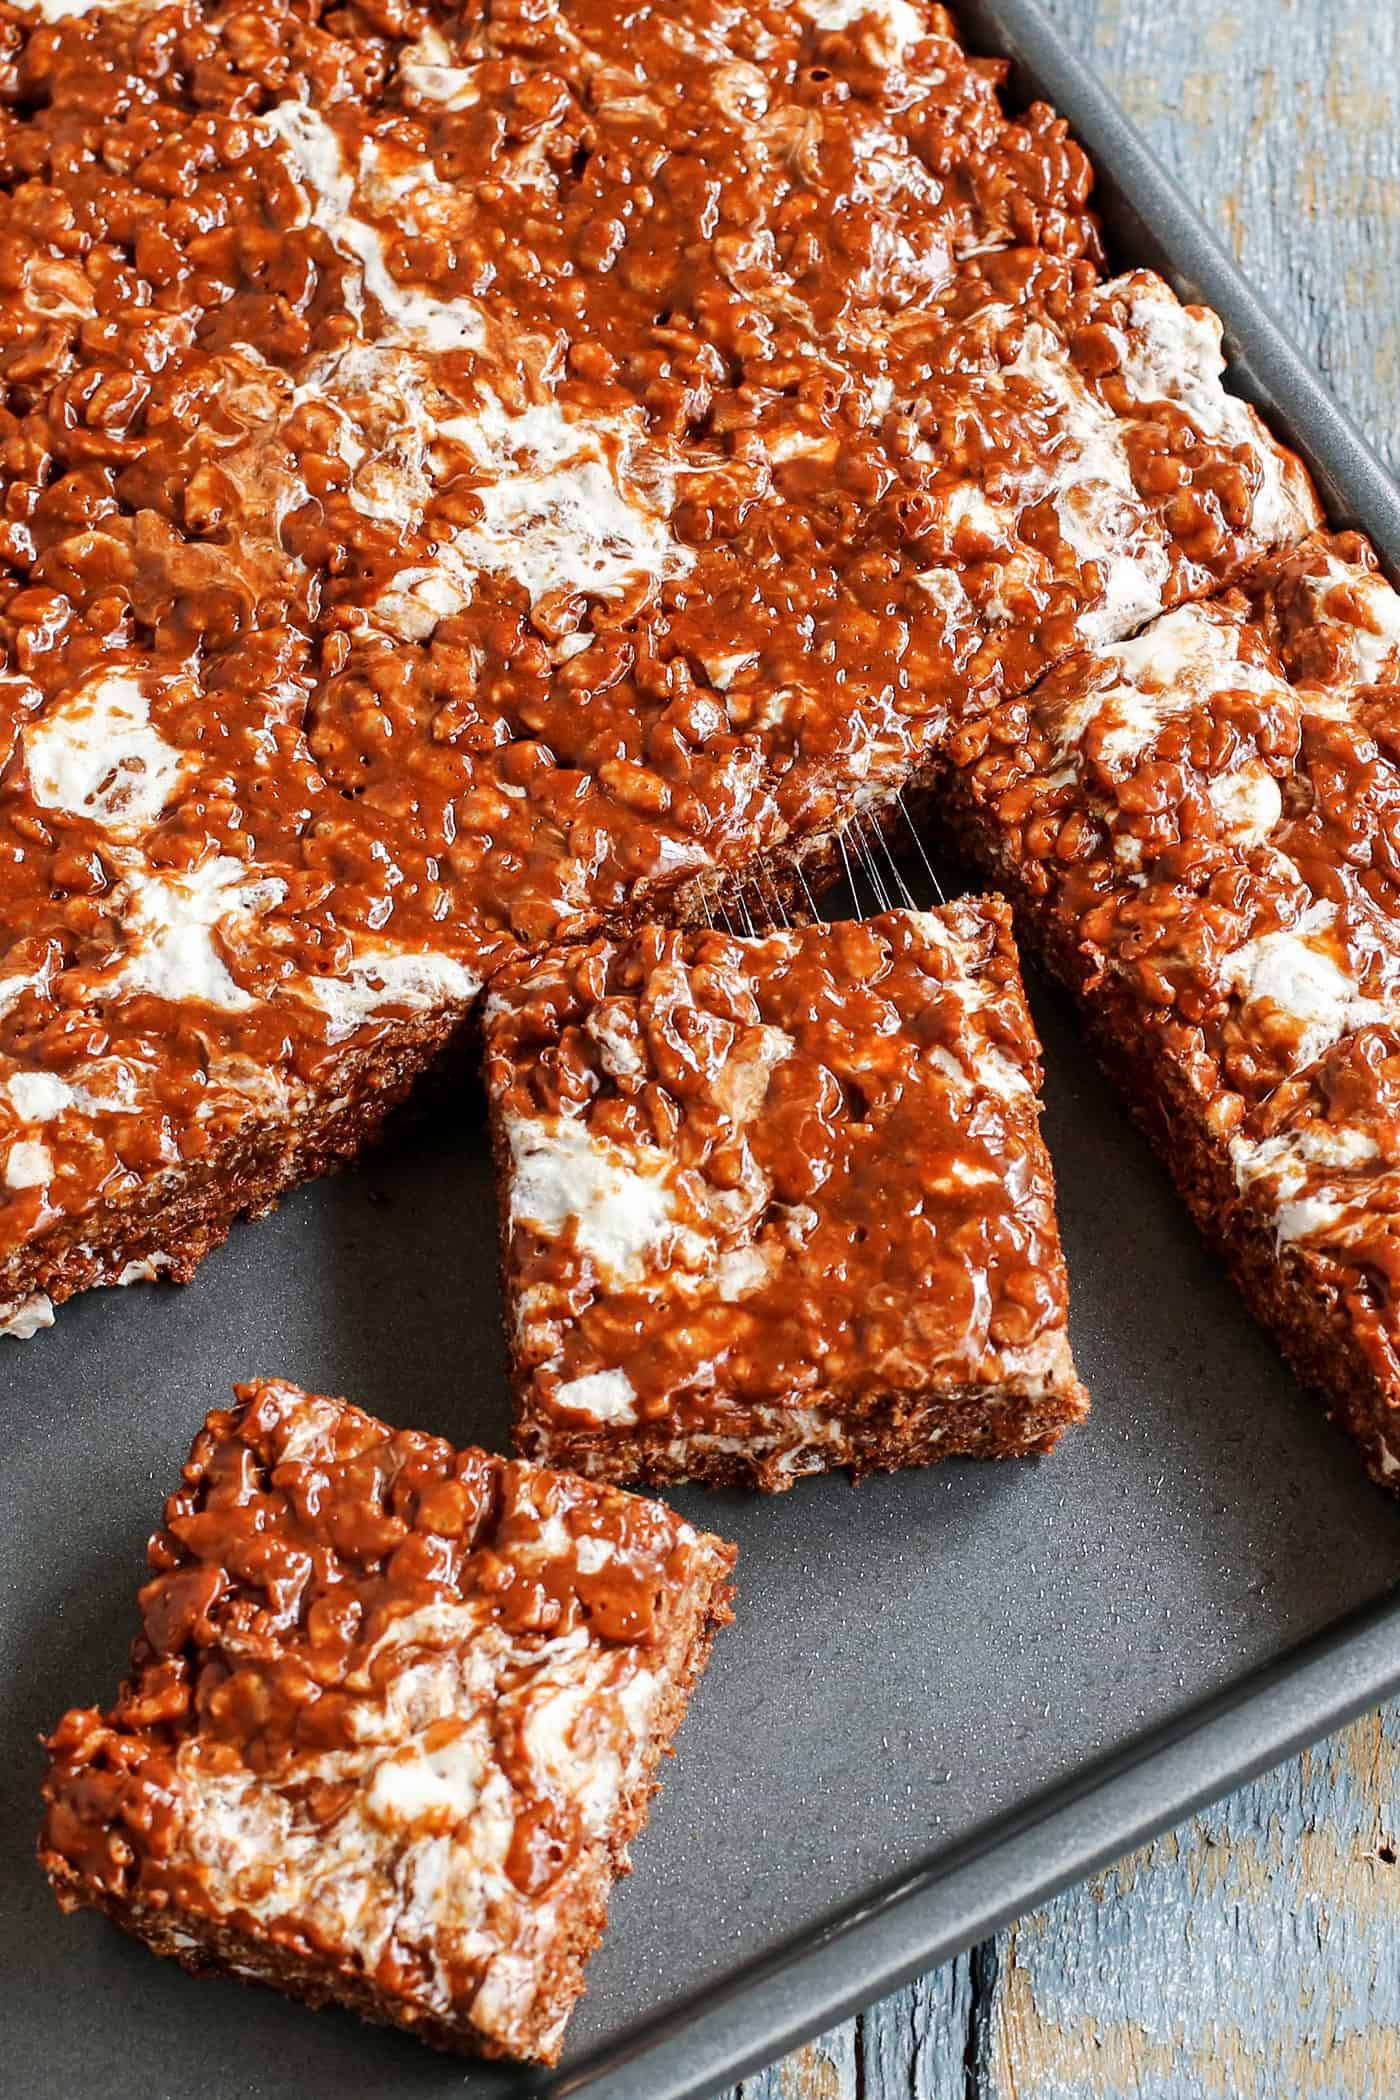 rice krispies bars with chocolate and extra marshmallow, in a baking pan